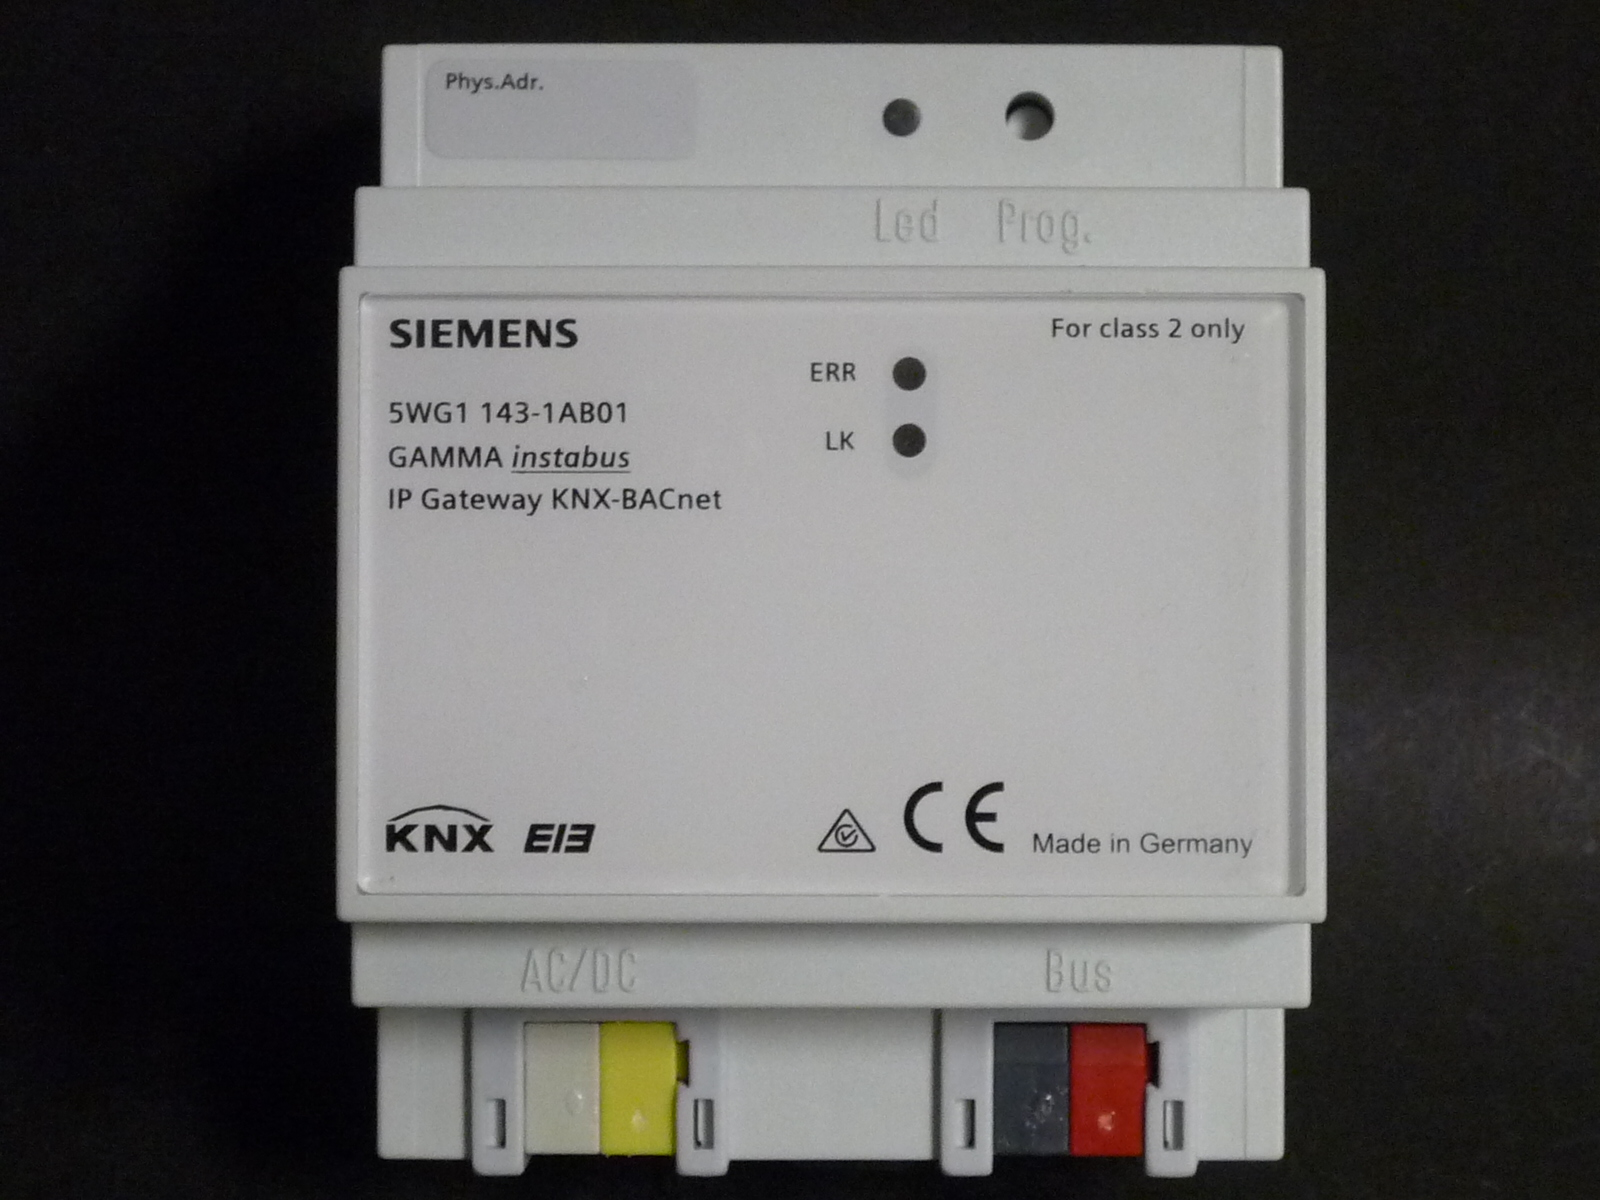 siemens eib knx ip gateway knx bacnet n 143 01 reg 5wg1 143 1ab01 neu ebay. Black Bedroom Furniture Sets. Home Design Ideas